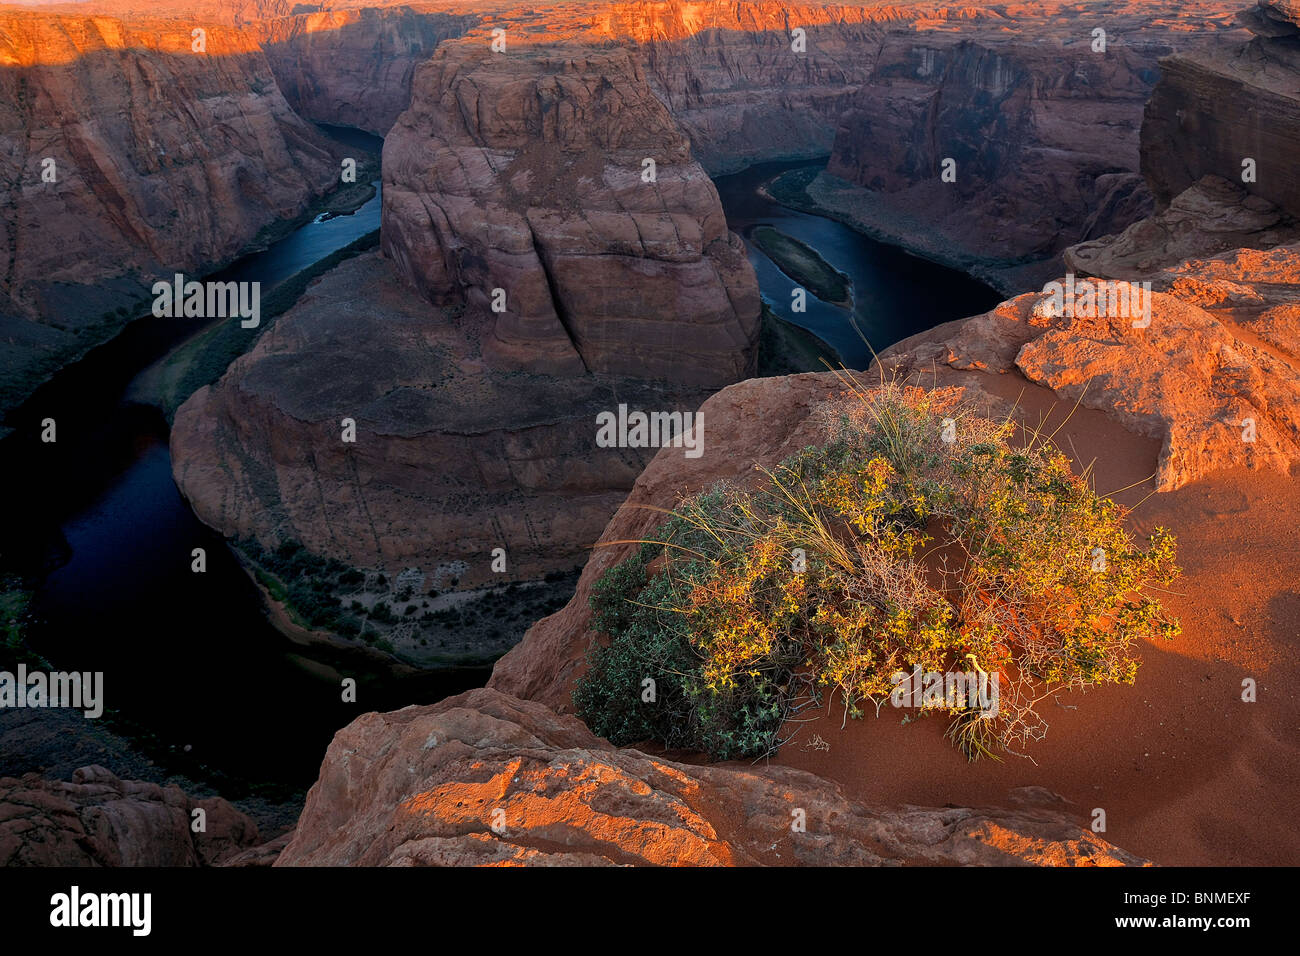 First light along the rim of Horseshoe Bend as Colorado River flows below, Page, Arizona, USA. - Stock Image